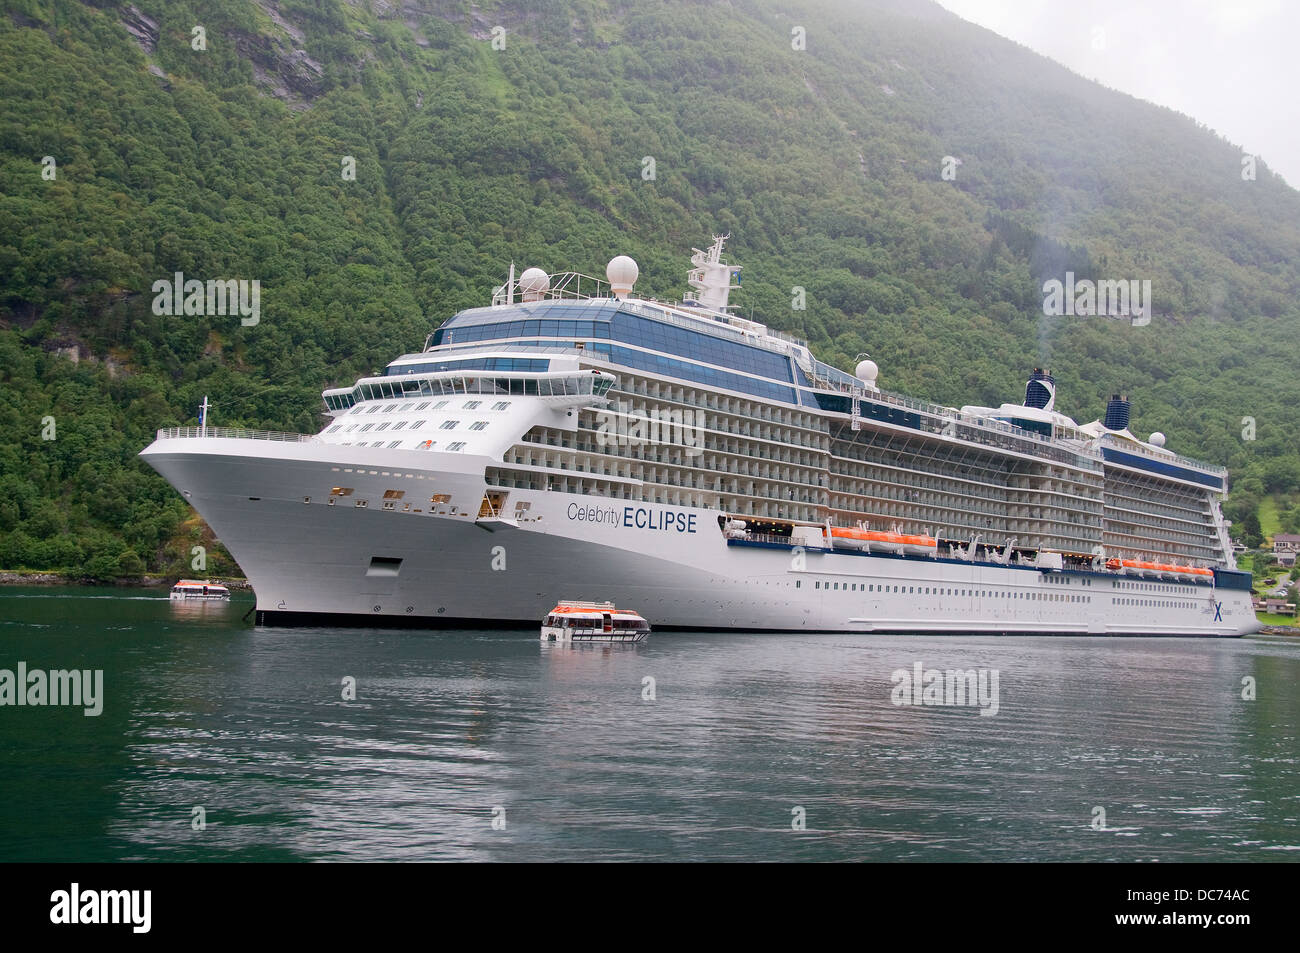 NORWEGIAN FJORDS - Celebrity Eclipse Review - Cruise Critic